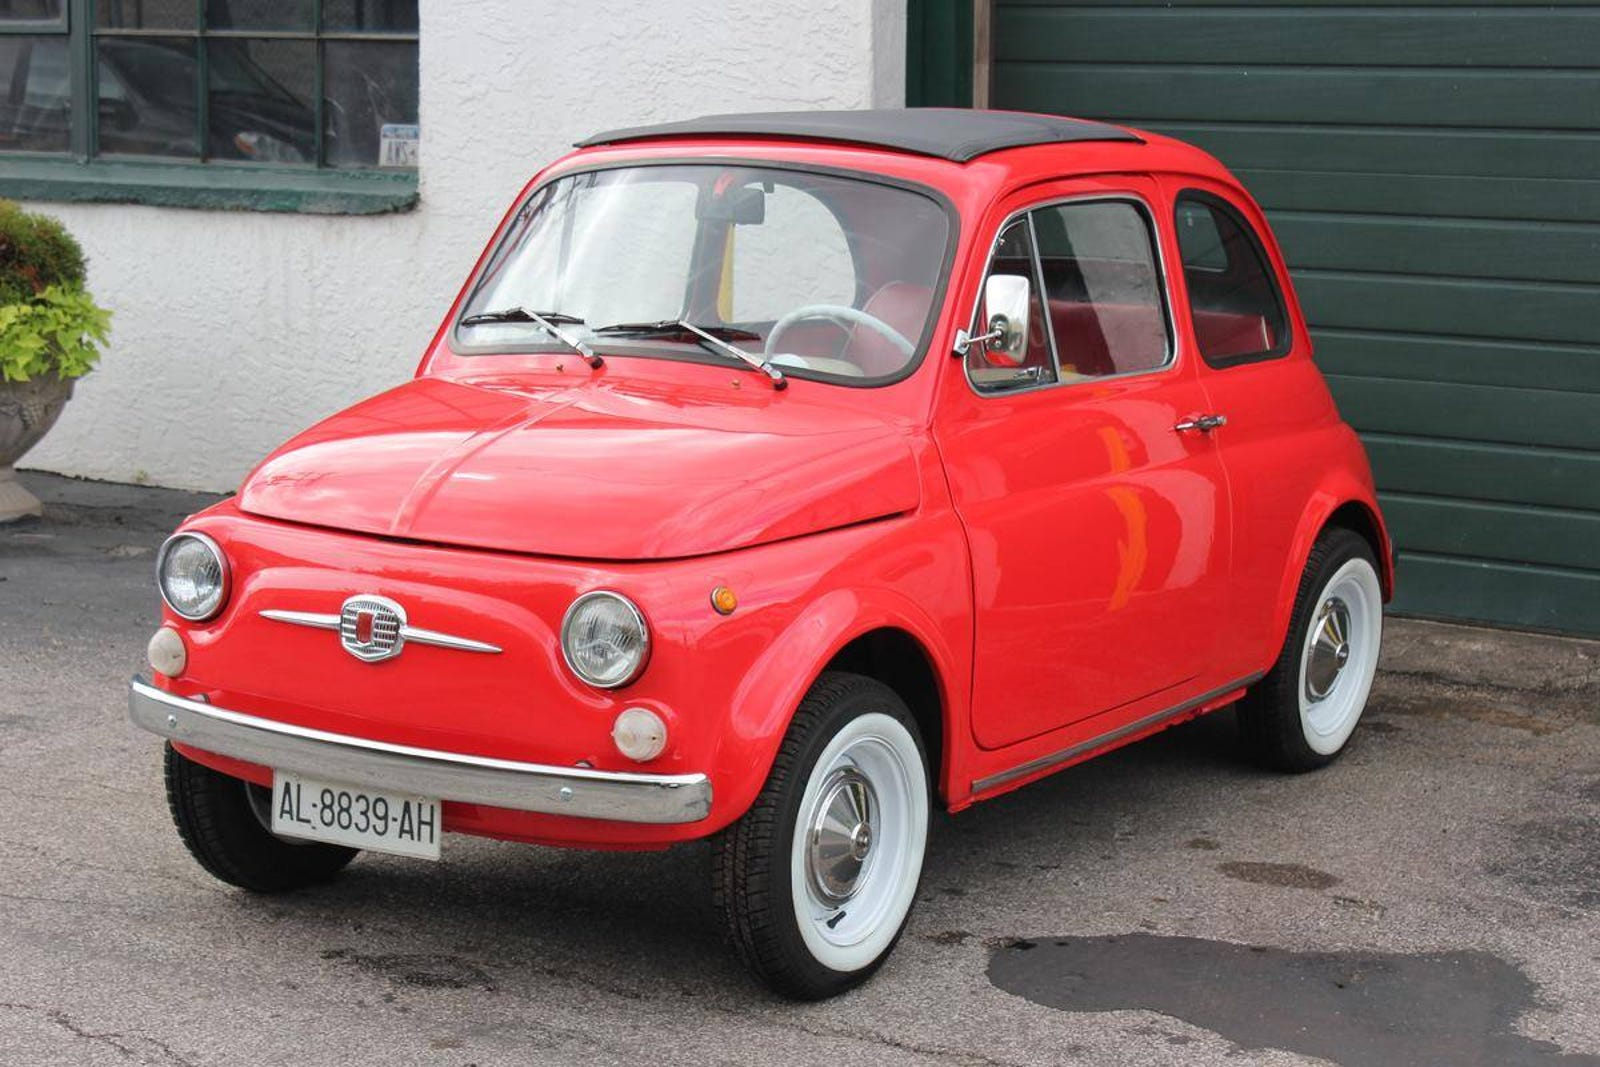 Your standard FIAT 500F - incredibly similar to the 500D, but note the now front-hinged doors. Aside from the Giardiniera, the 500F was the only other 'main variant' to be sold alongside ANOTHER main variant. 500F production continued alongside the later 500L where the less fancy 500F was offered as the 'base model'.